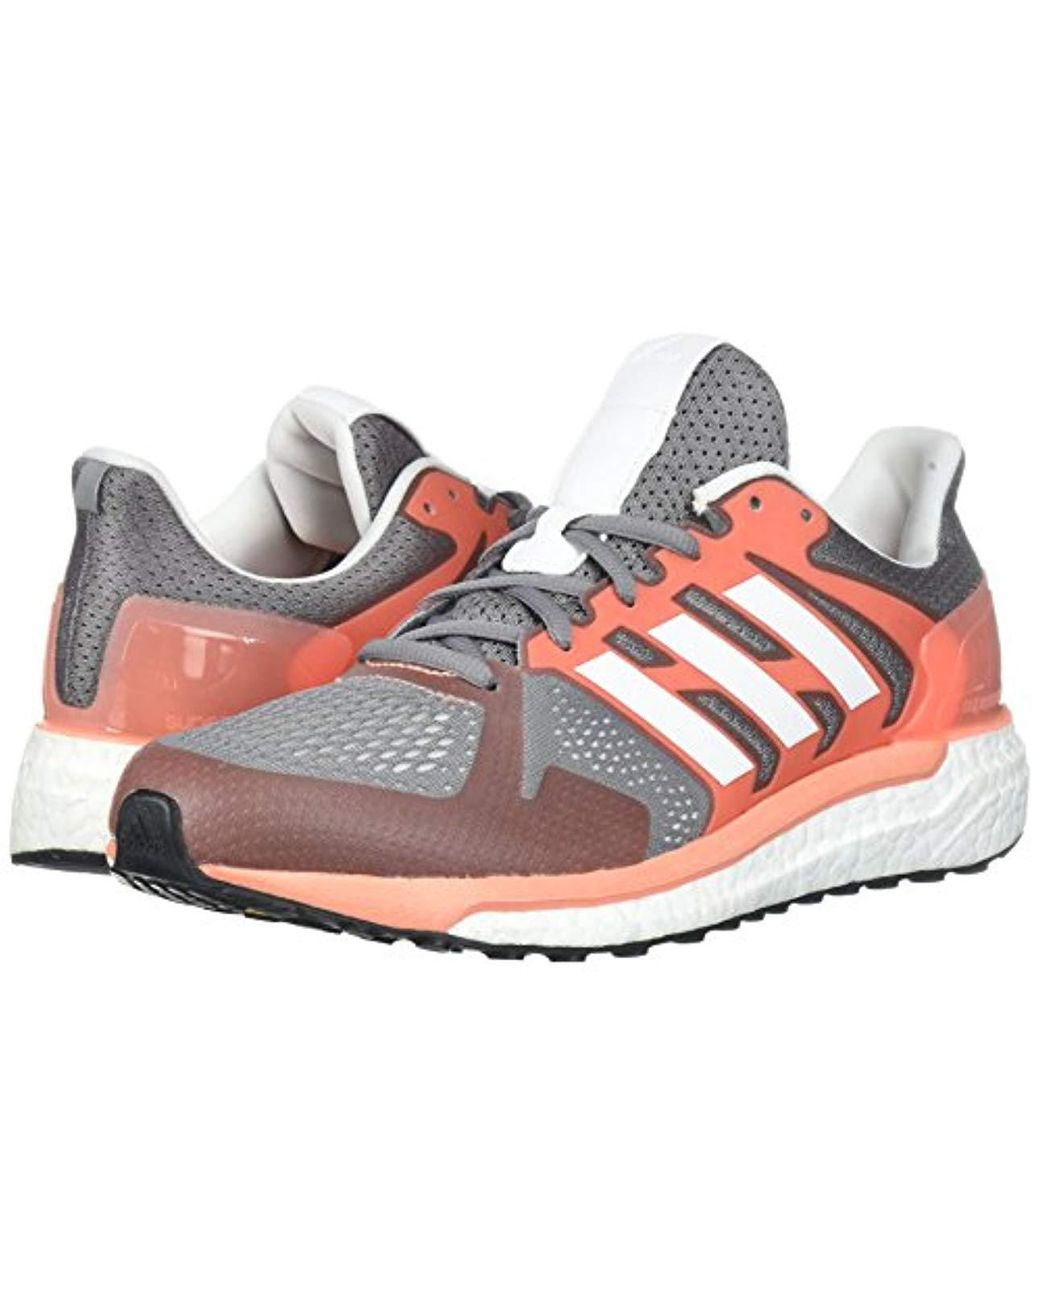 Adidas Womens Supernova ST Running Shoes: Amazon.ca: Shoes